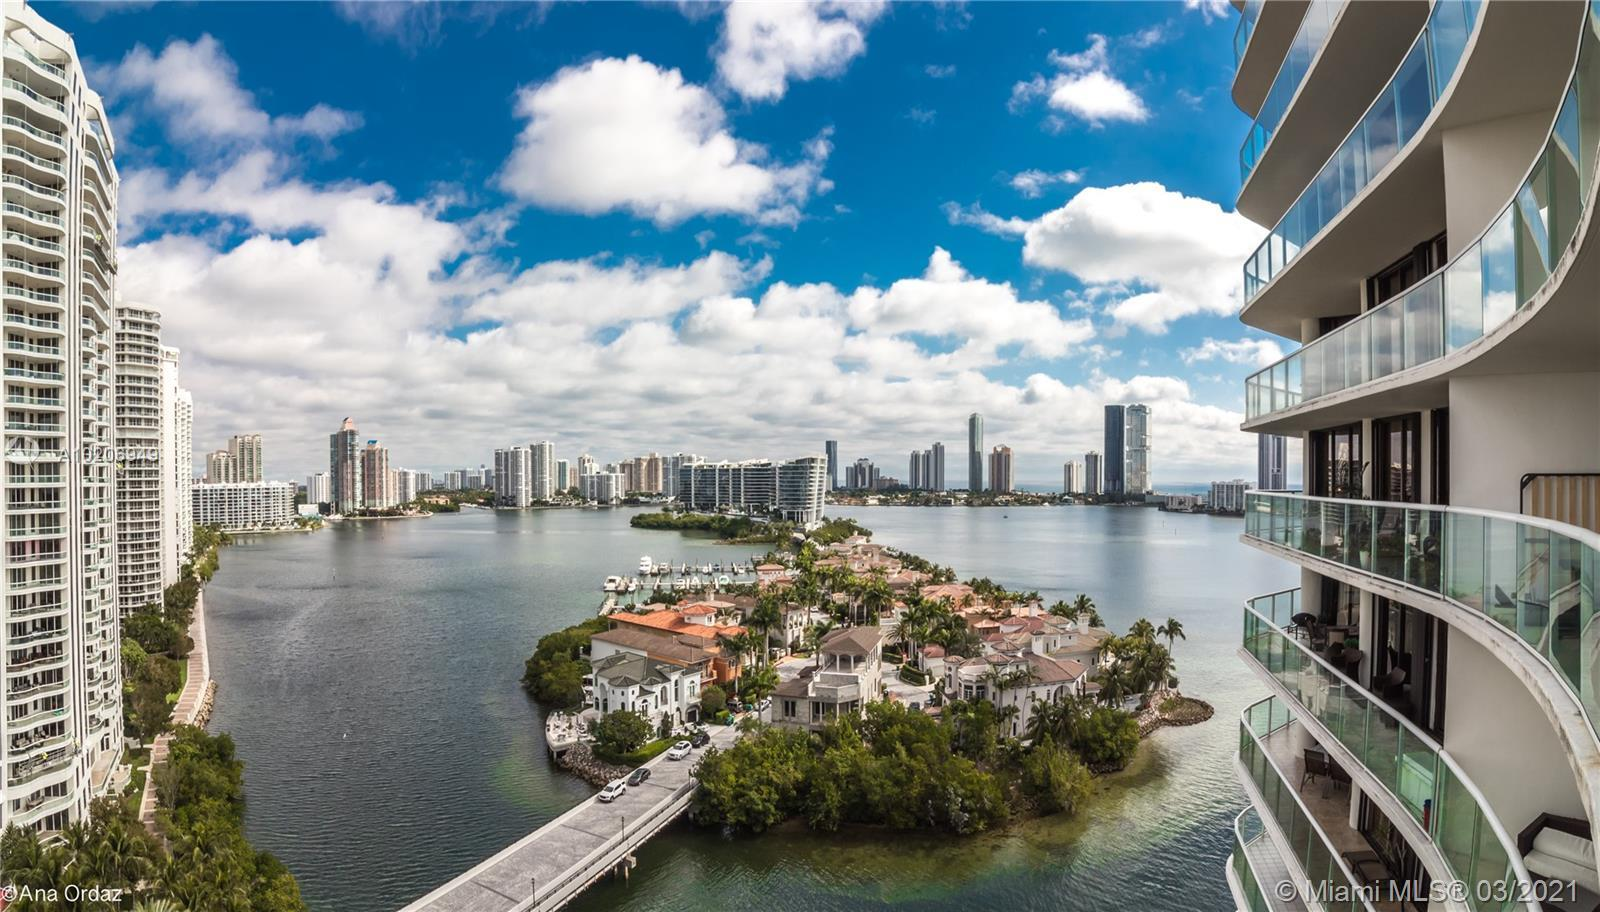 REPRICED -INVESTMENT OPPORTUNITY AVAILABLE WILLIAMS ISLAND IS KNOWN AS FLORIDA'S RIVIERA, ONE OF THE